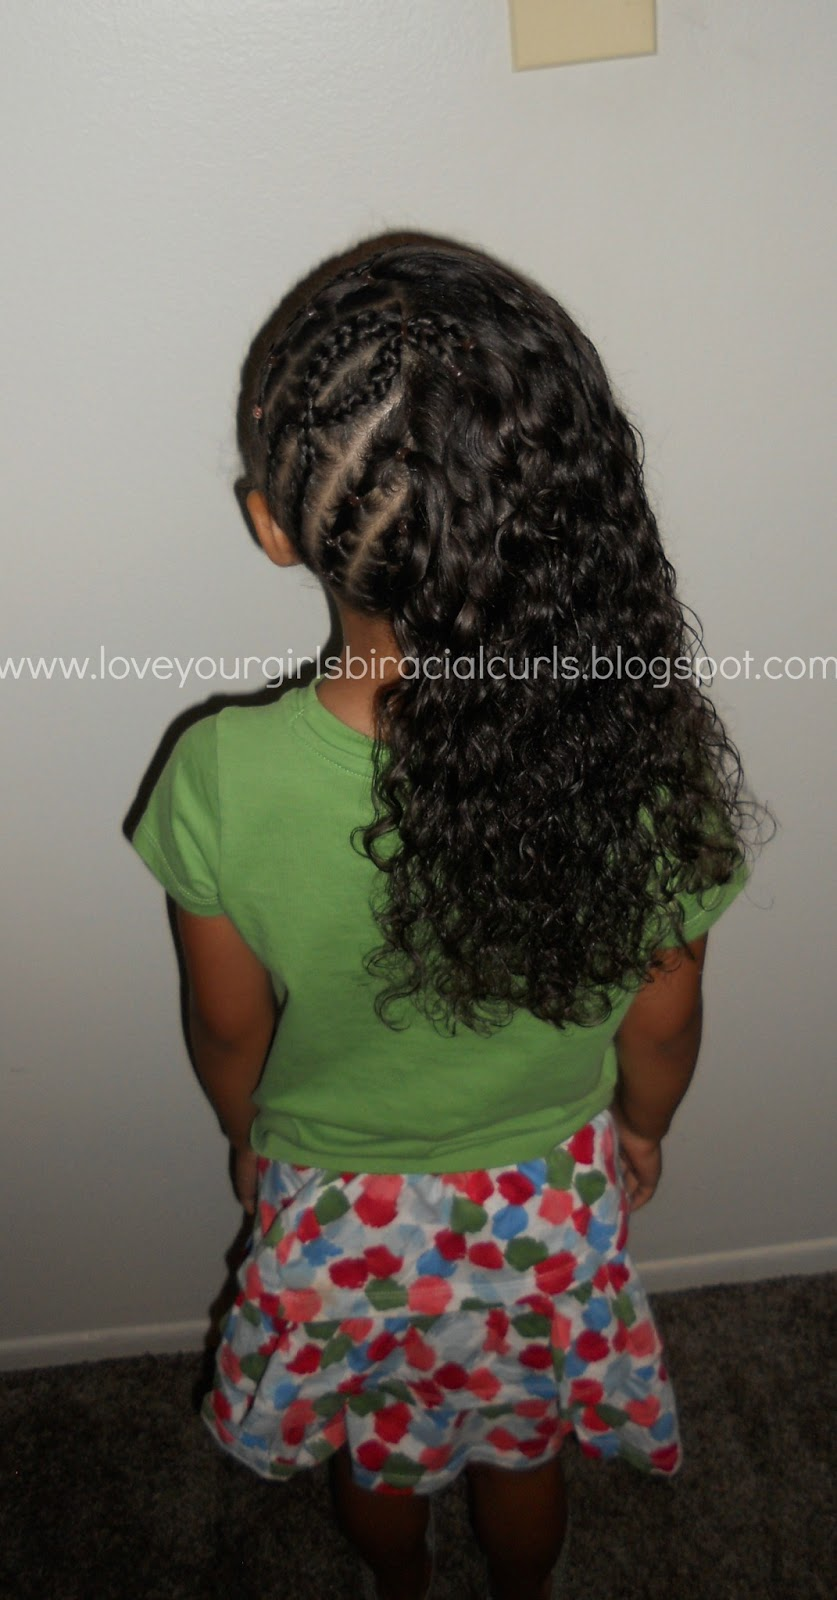 love your girls biracial curls: cute school hair style for girls